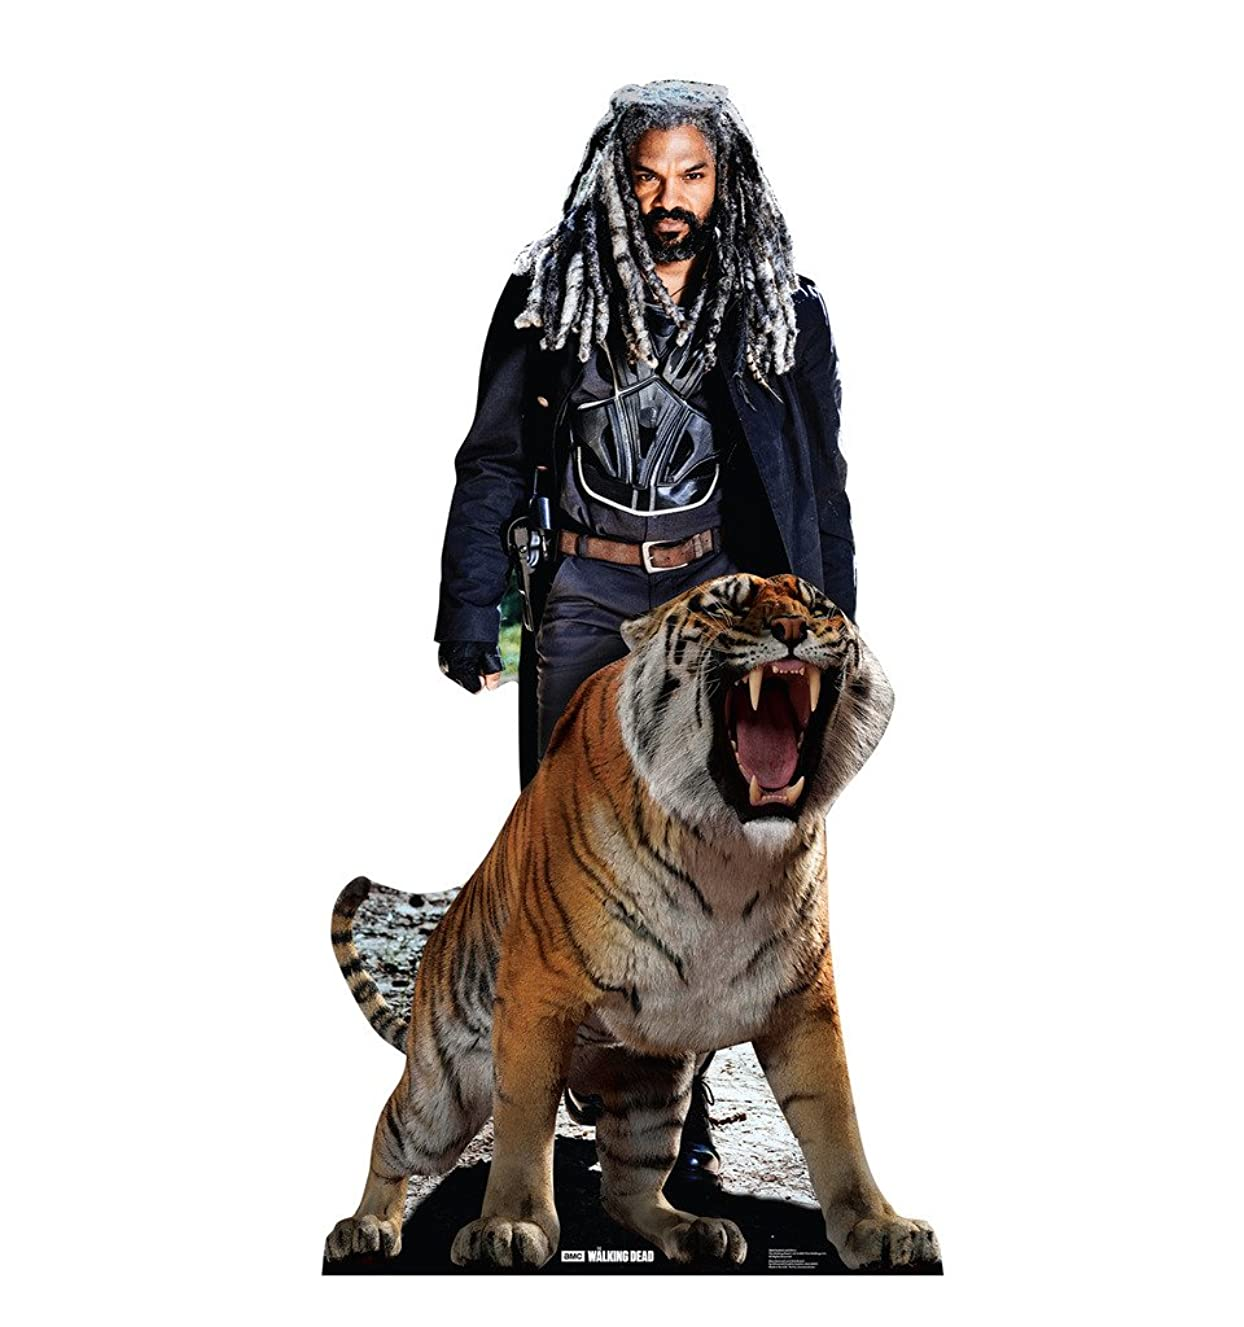 Advanced Graphics Ezekiel and Shiva - AMC's The Walking Dead Life Size Cardboard Cutout Standup